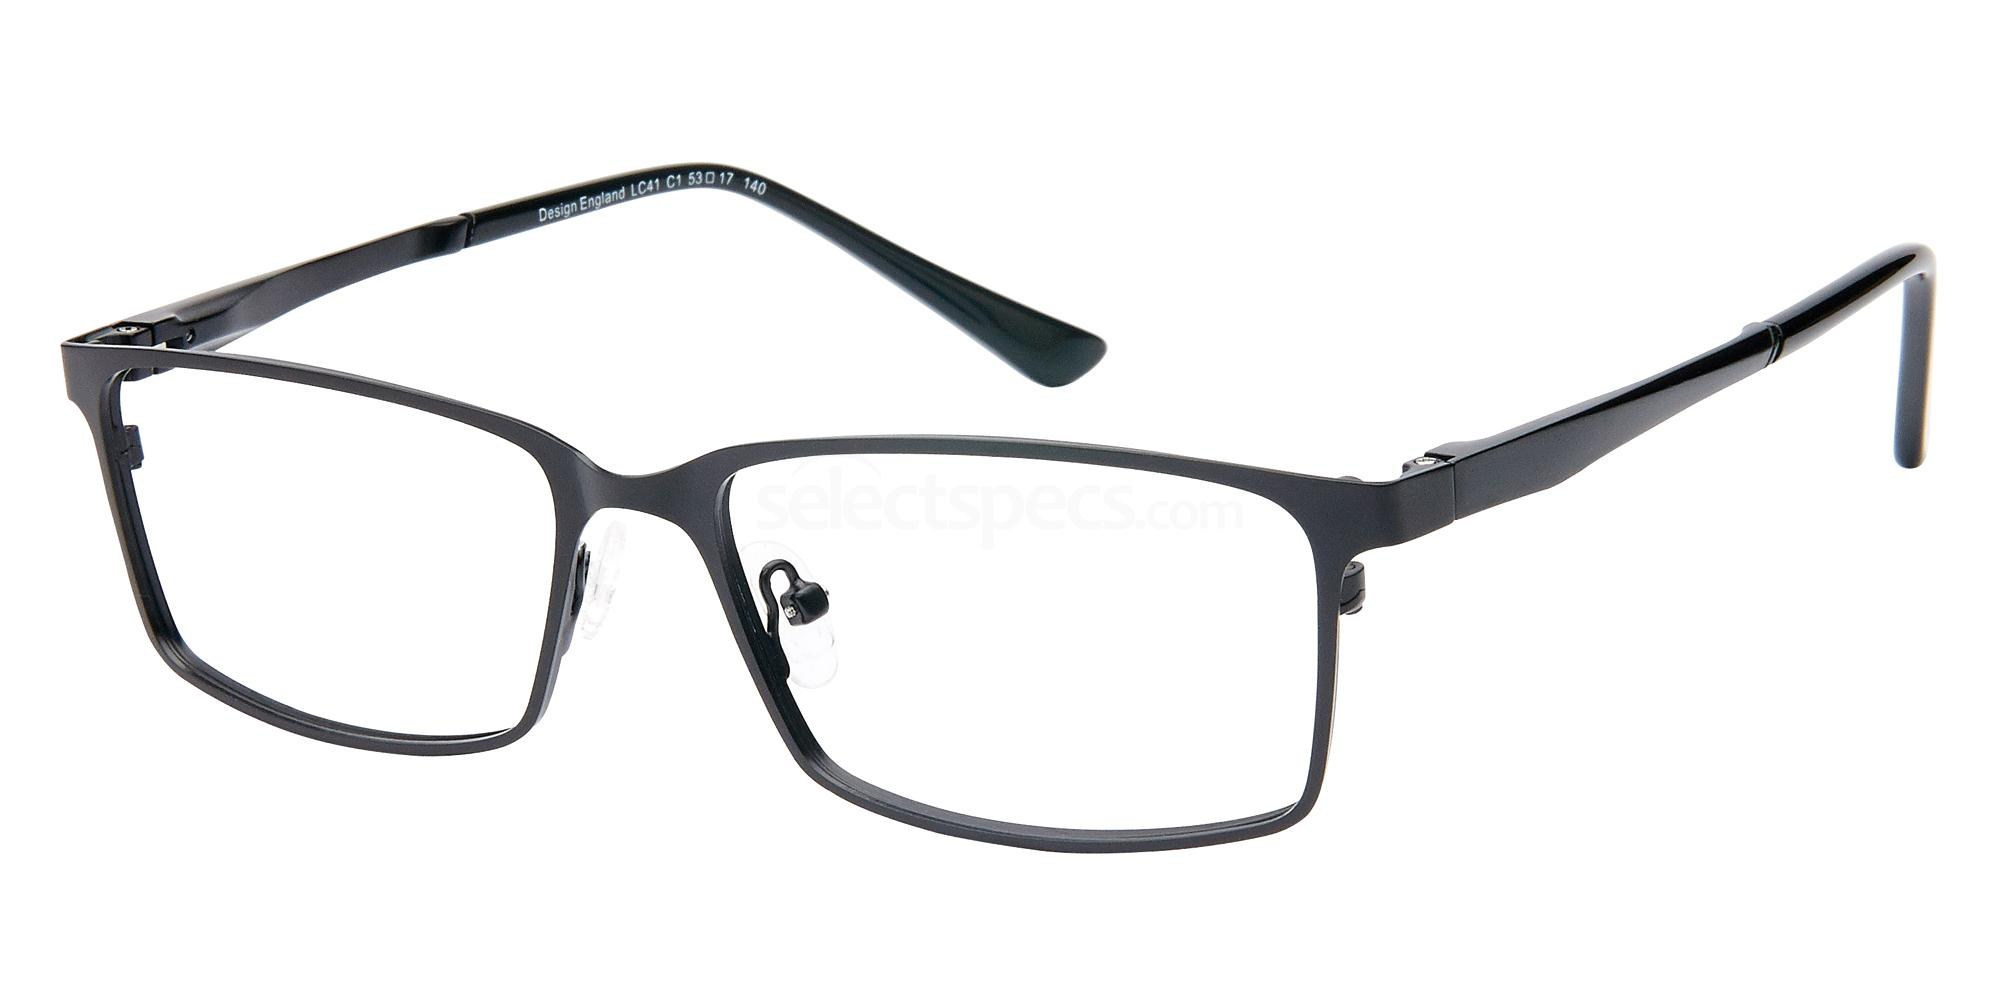 C1 LC41 with Clip On Glasses, London Club